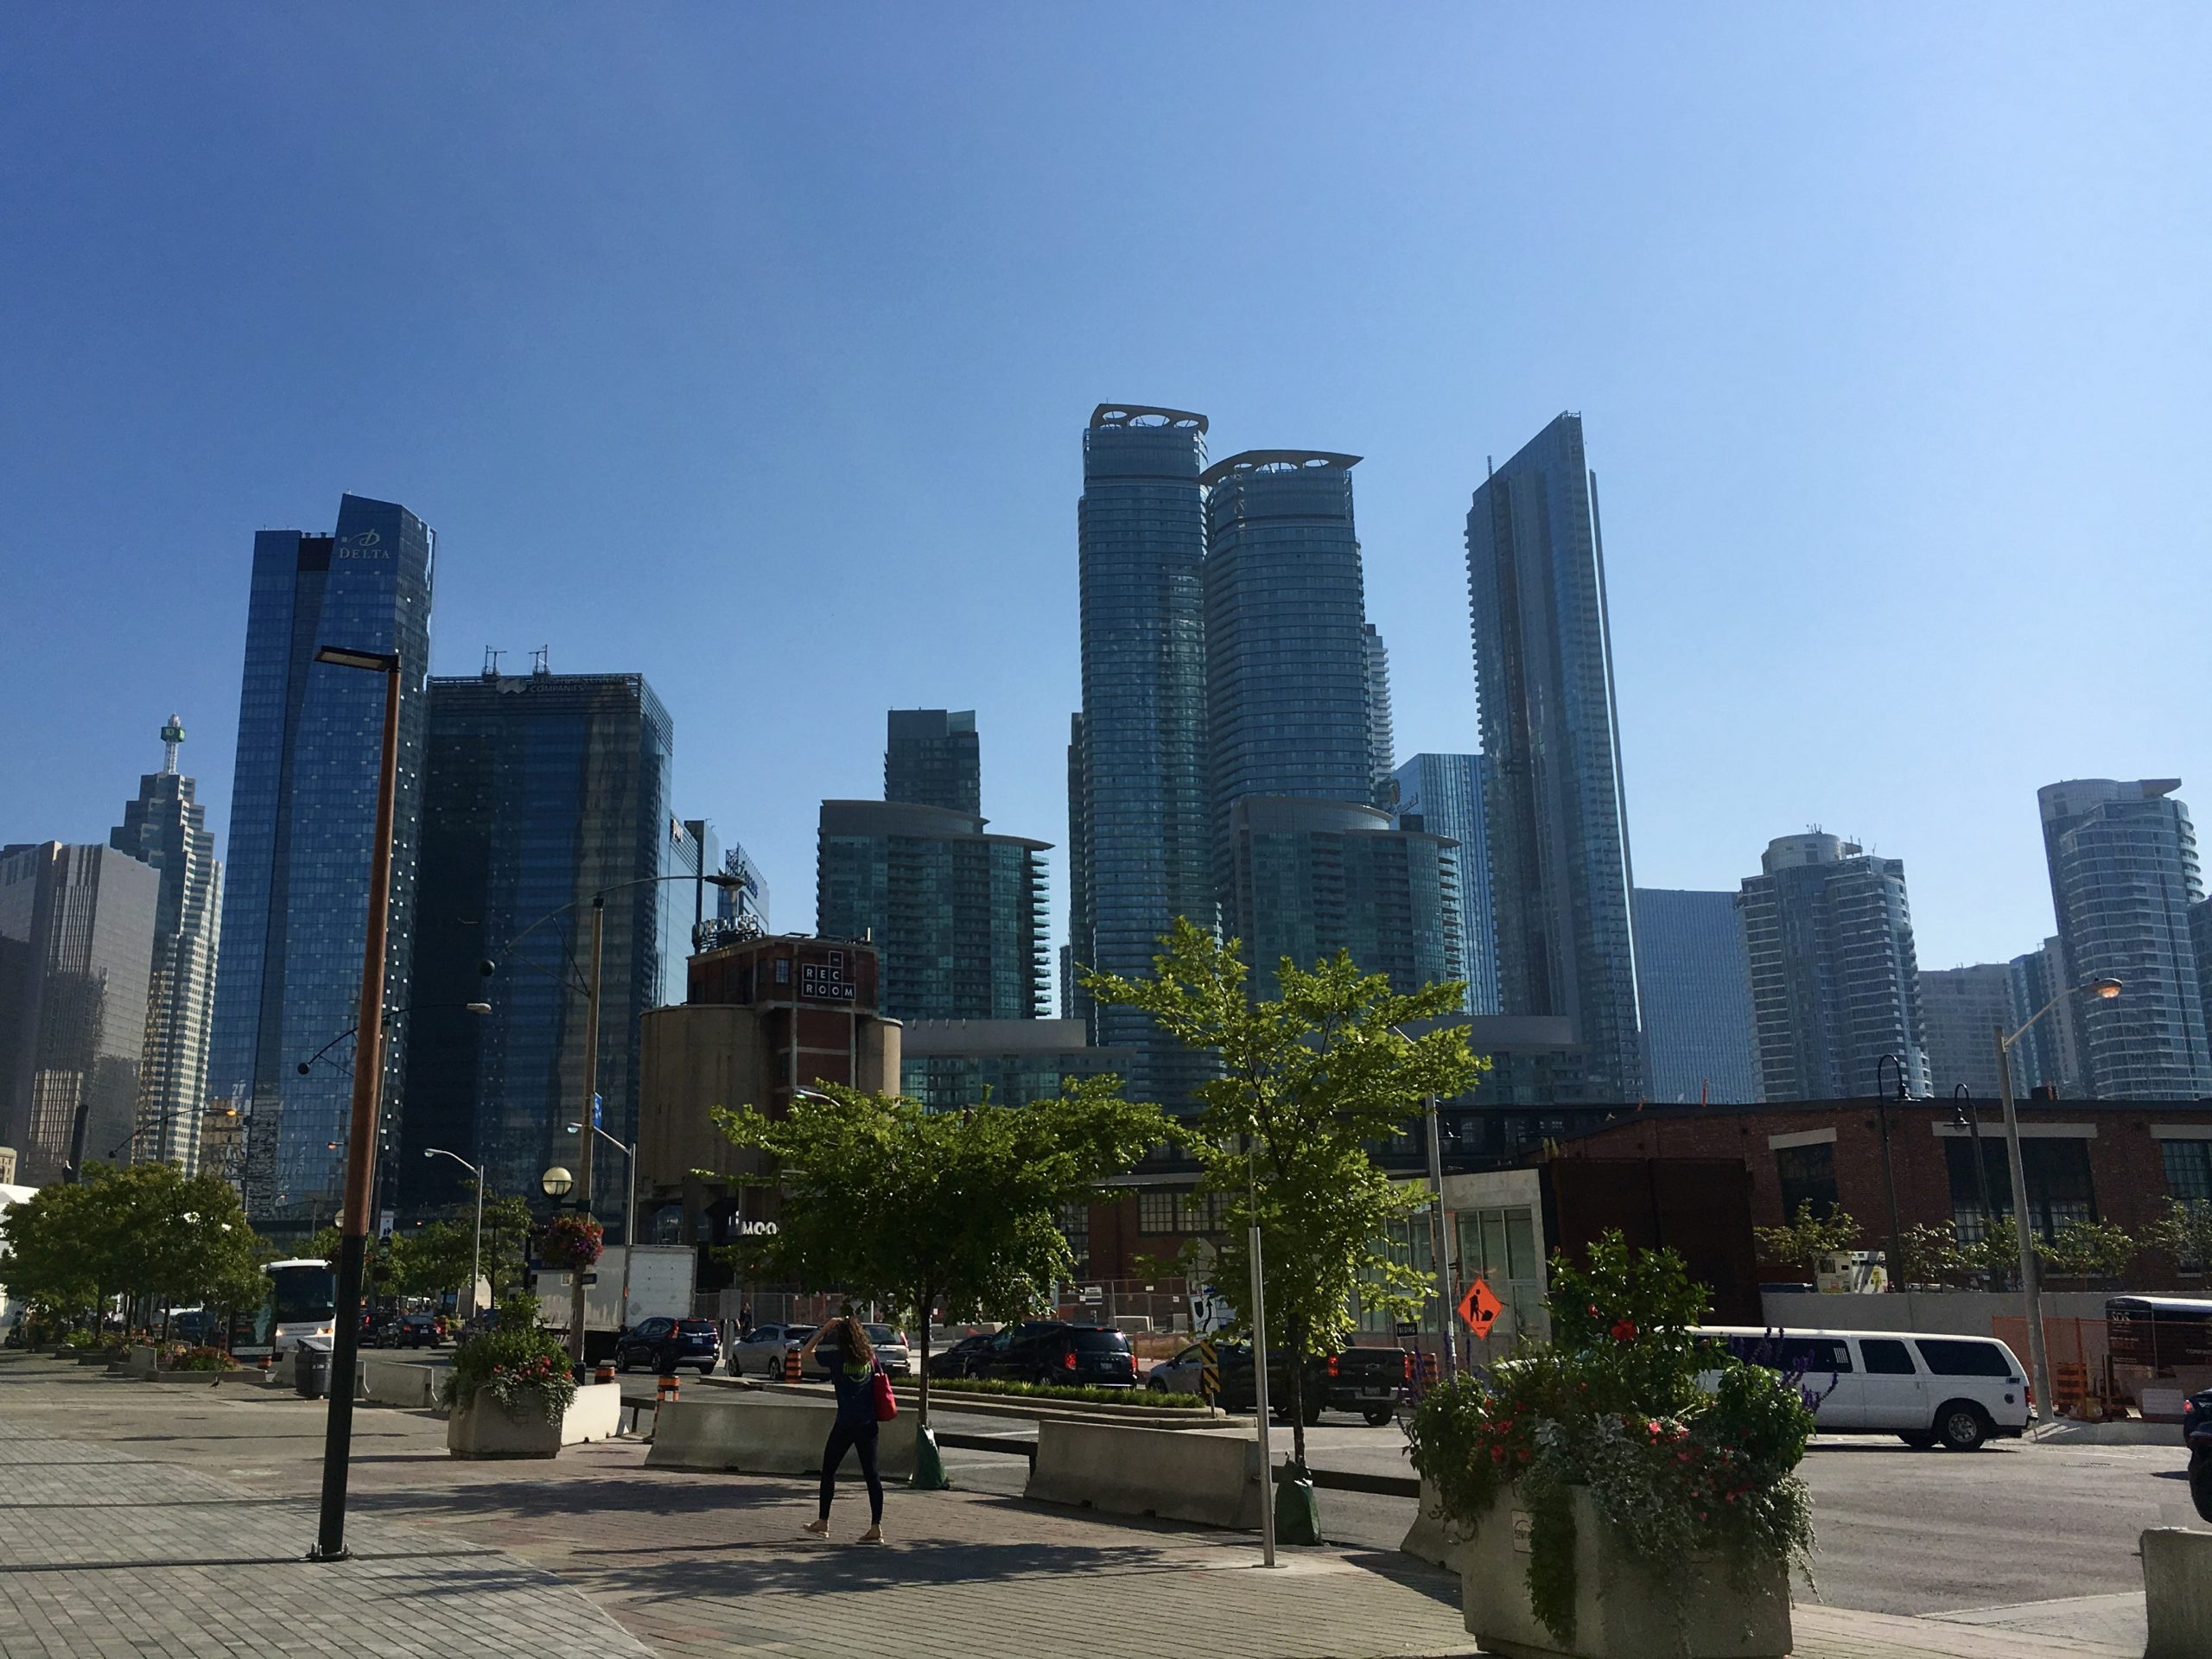 Ontario – Out in nature and the multi-cultural metropolis Toronto